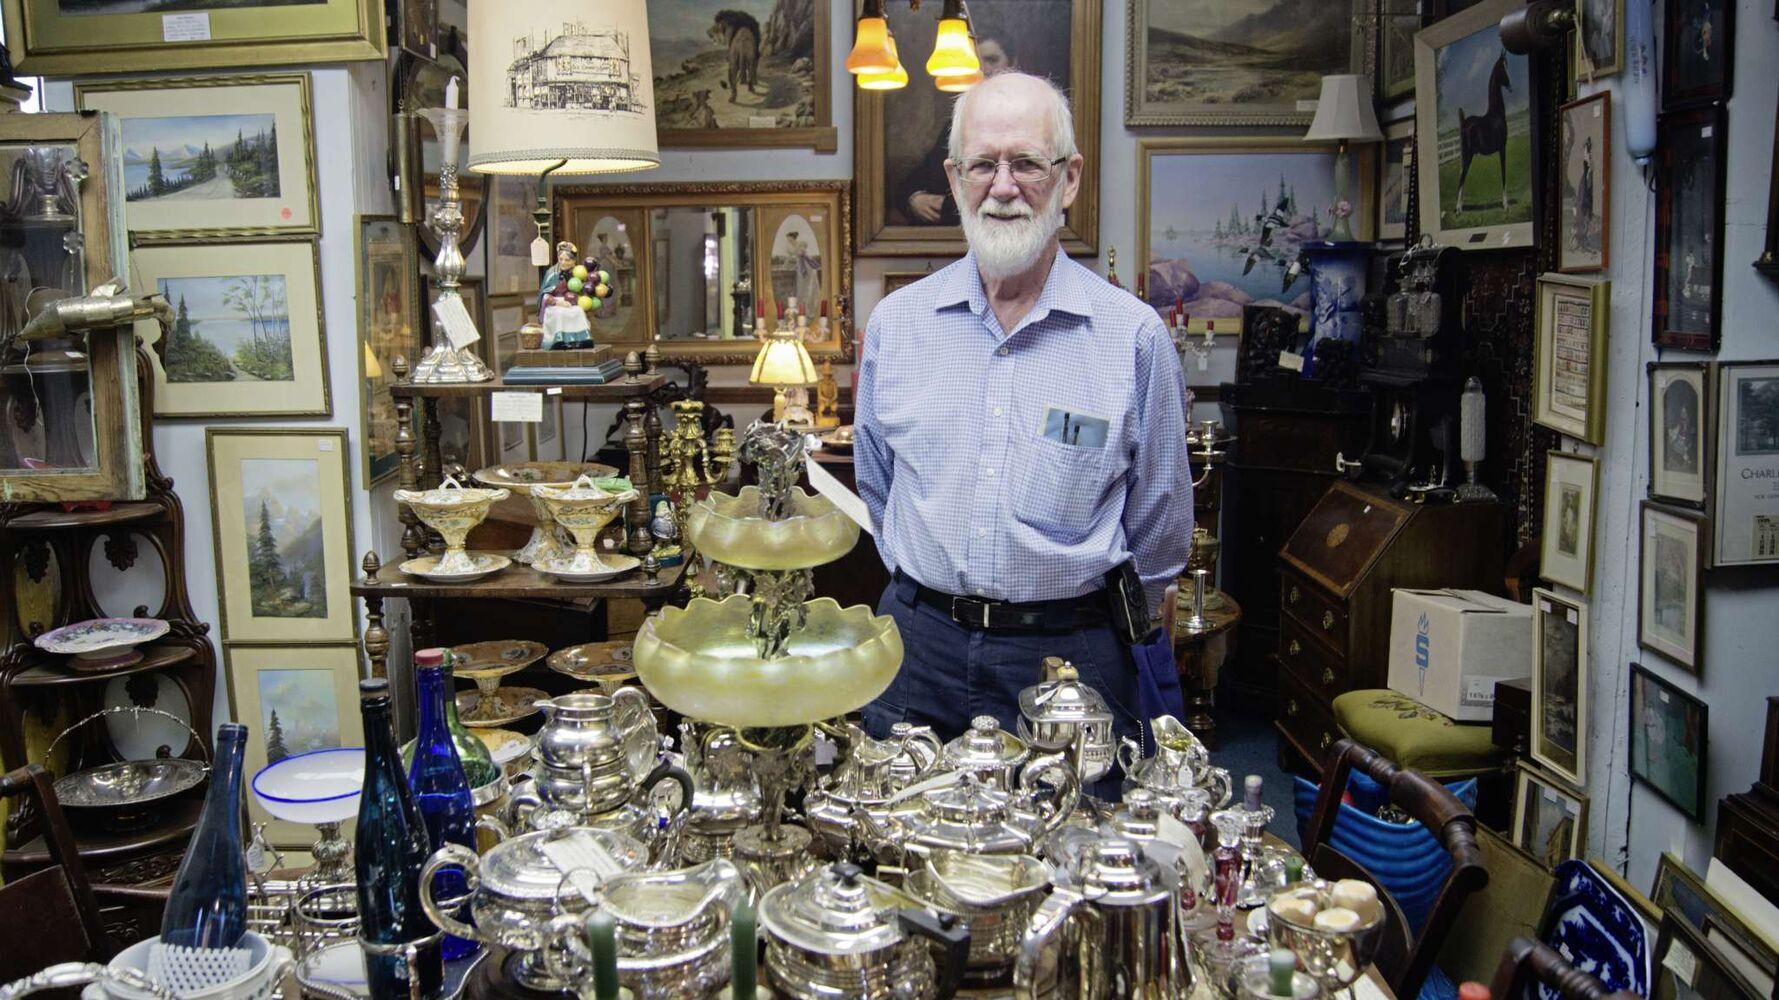 John Cooper is the owner of Abbey Antiques on Corydon Avenue. After 25 years in business in the area, he's developed quite the affinity for silver, glassware, and rare items.  His notable pieces follow.  (Danielle Da Silva - Sou'wester)